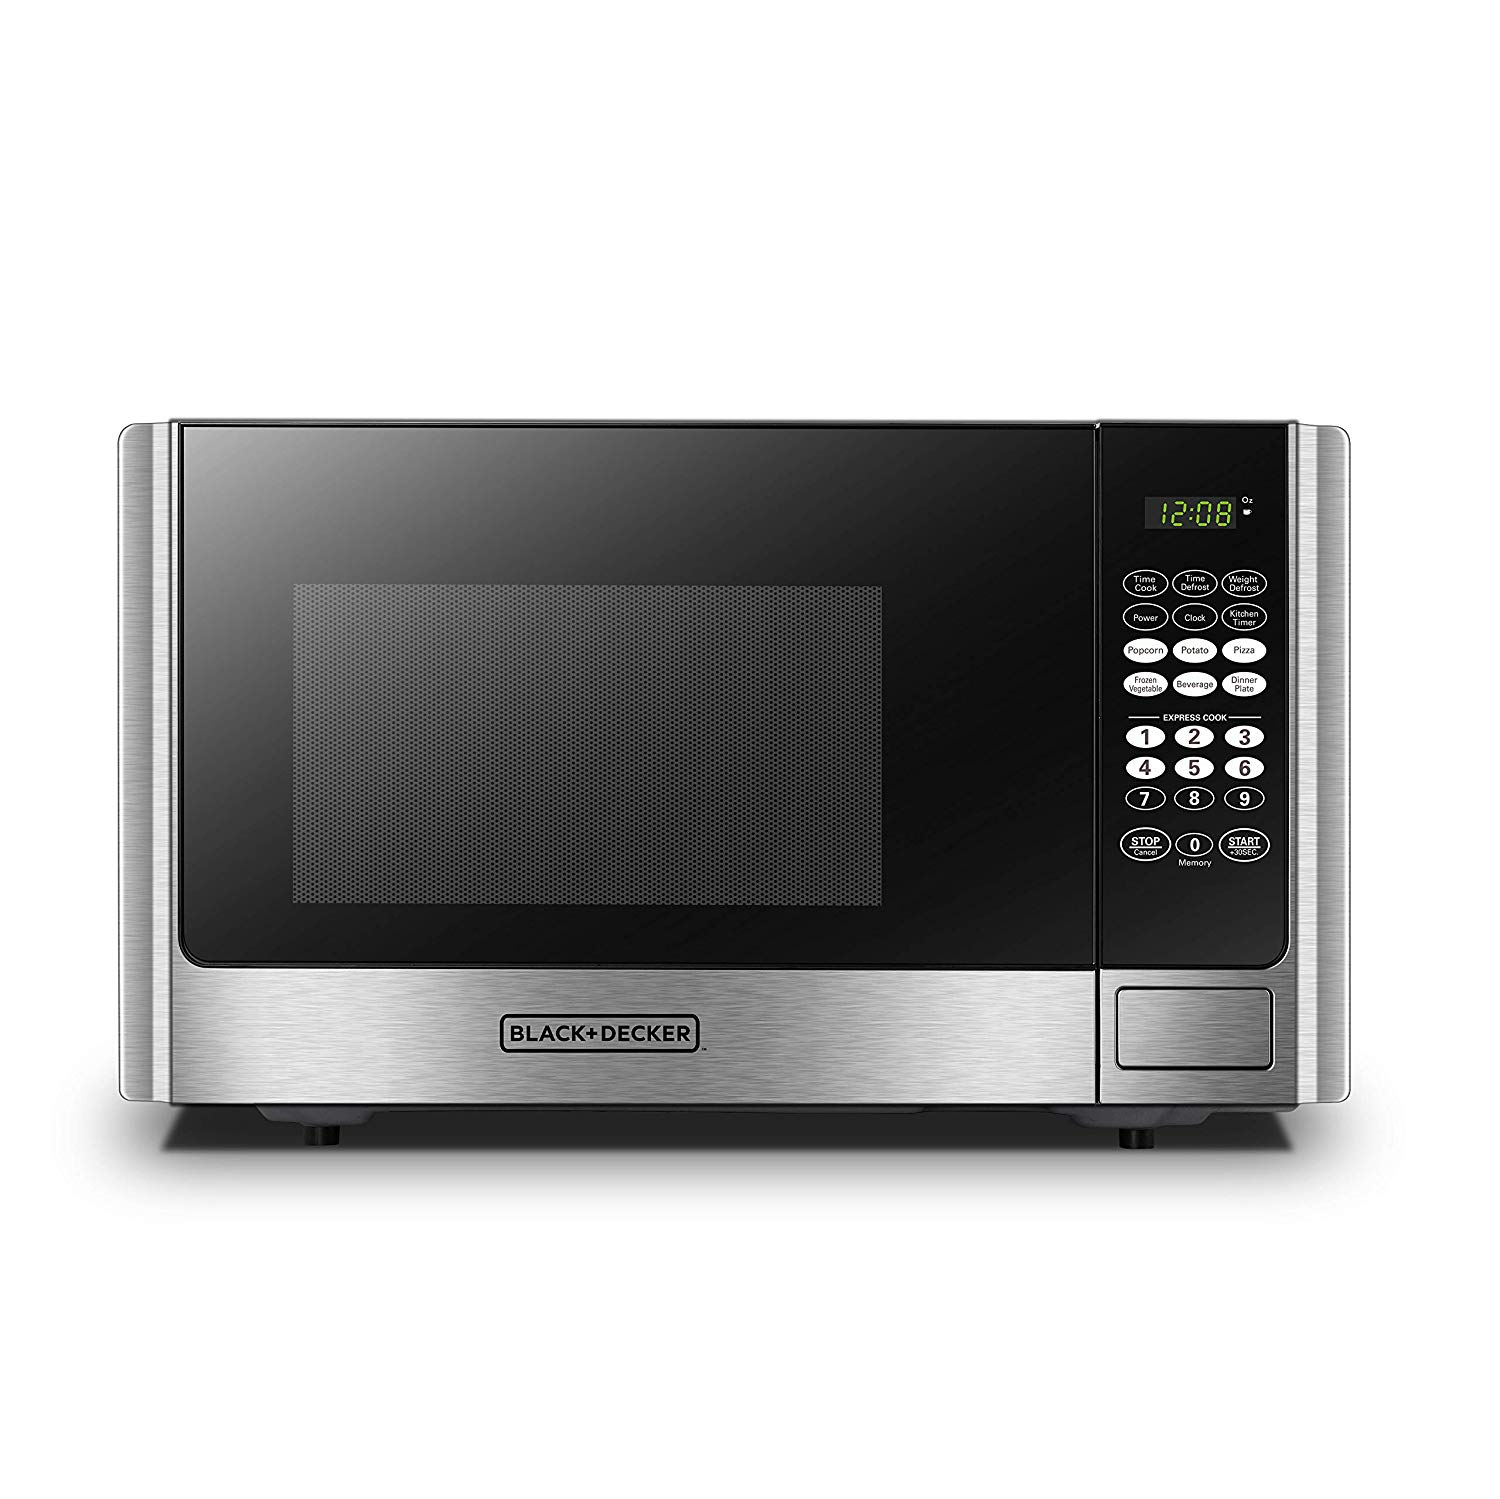 Black & Decker Built-In Microwave